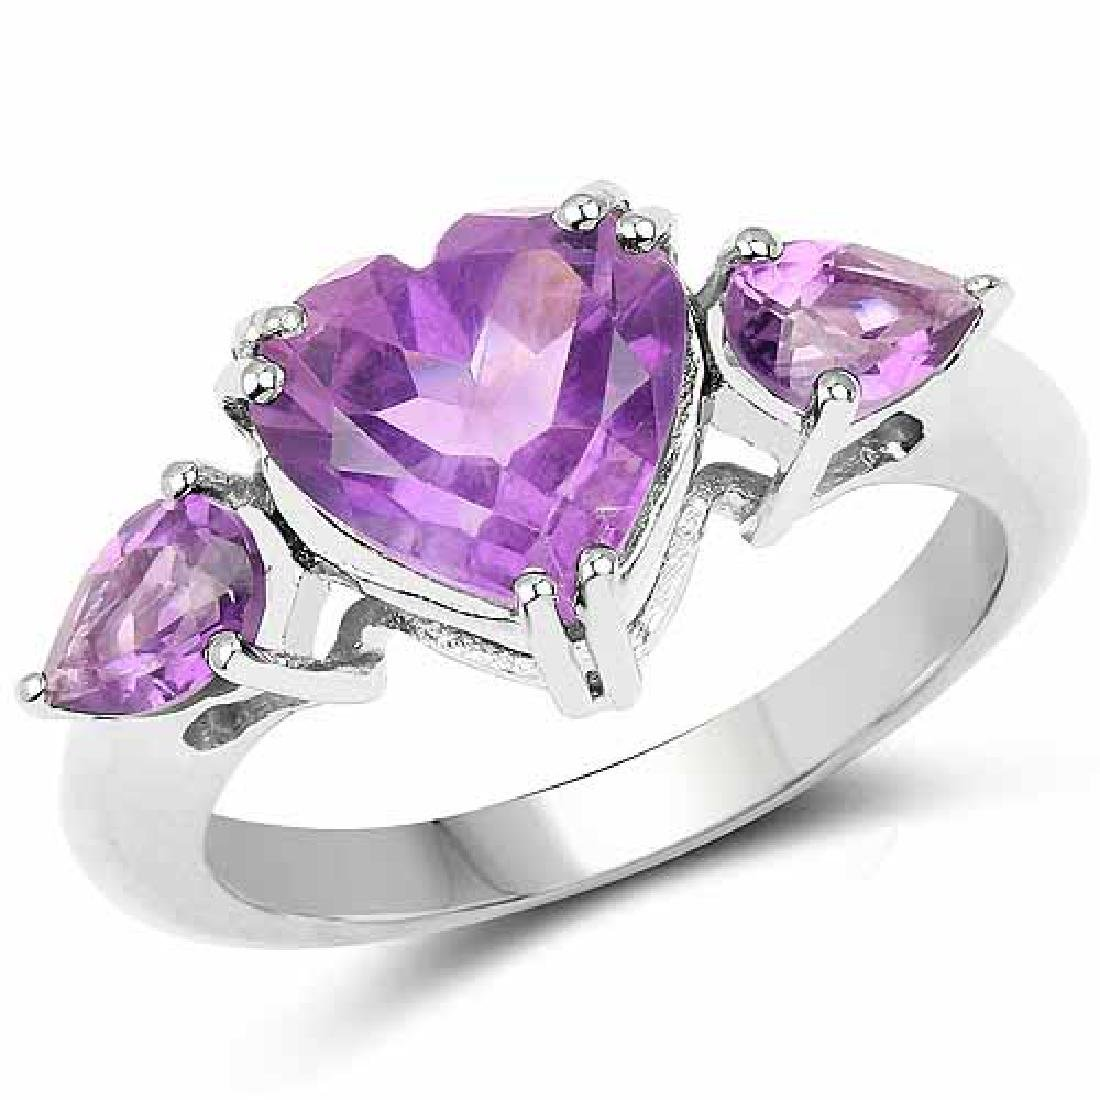 2.74 Carat Genuine Amethyst .925 Sterling Silver Ring